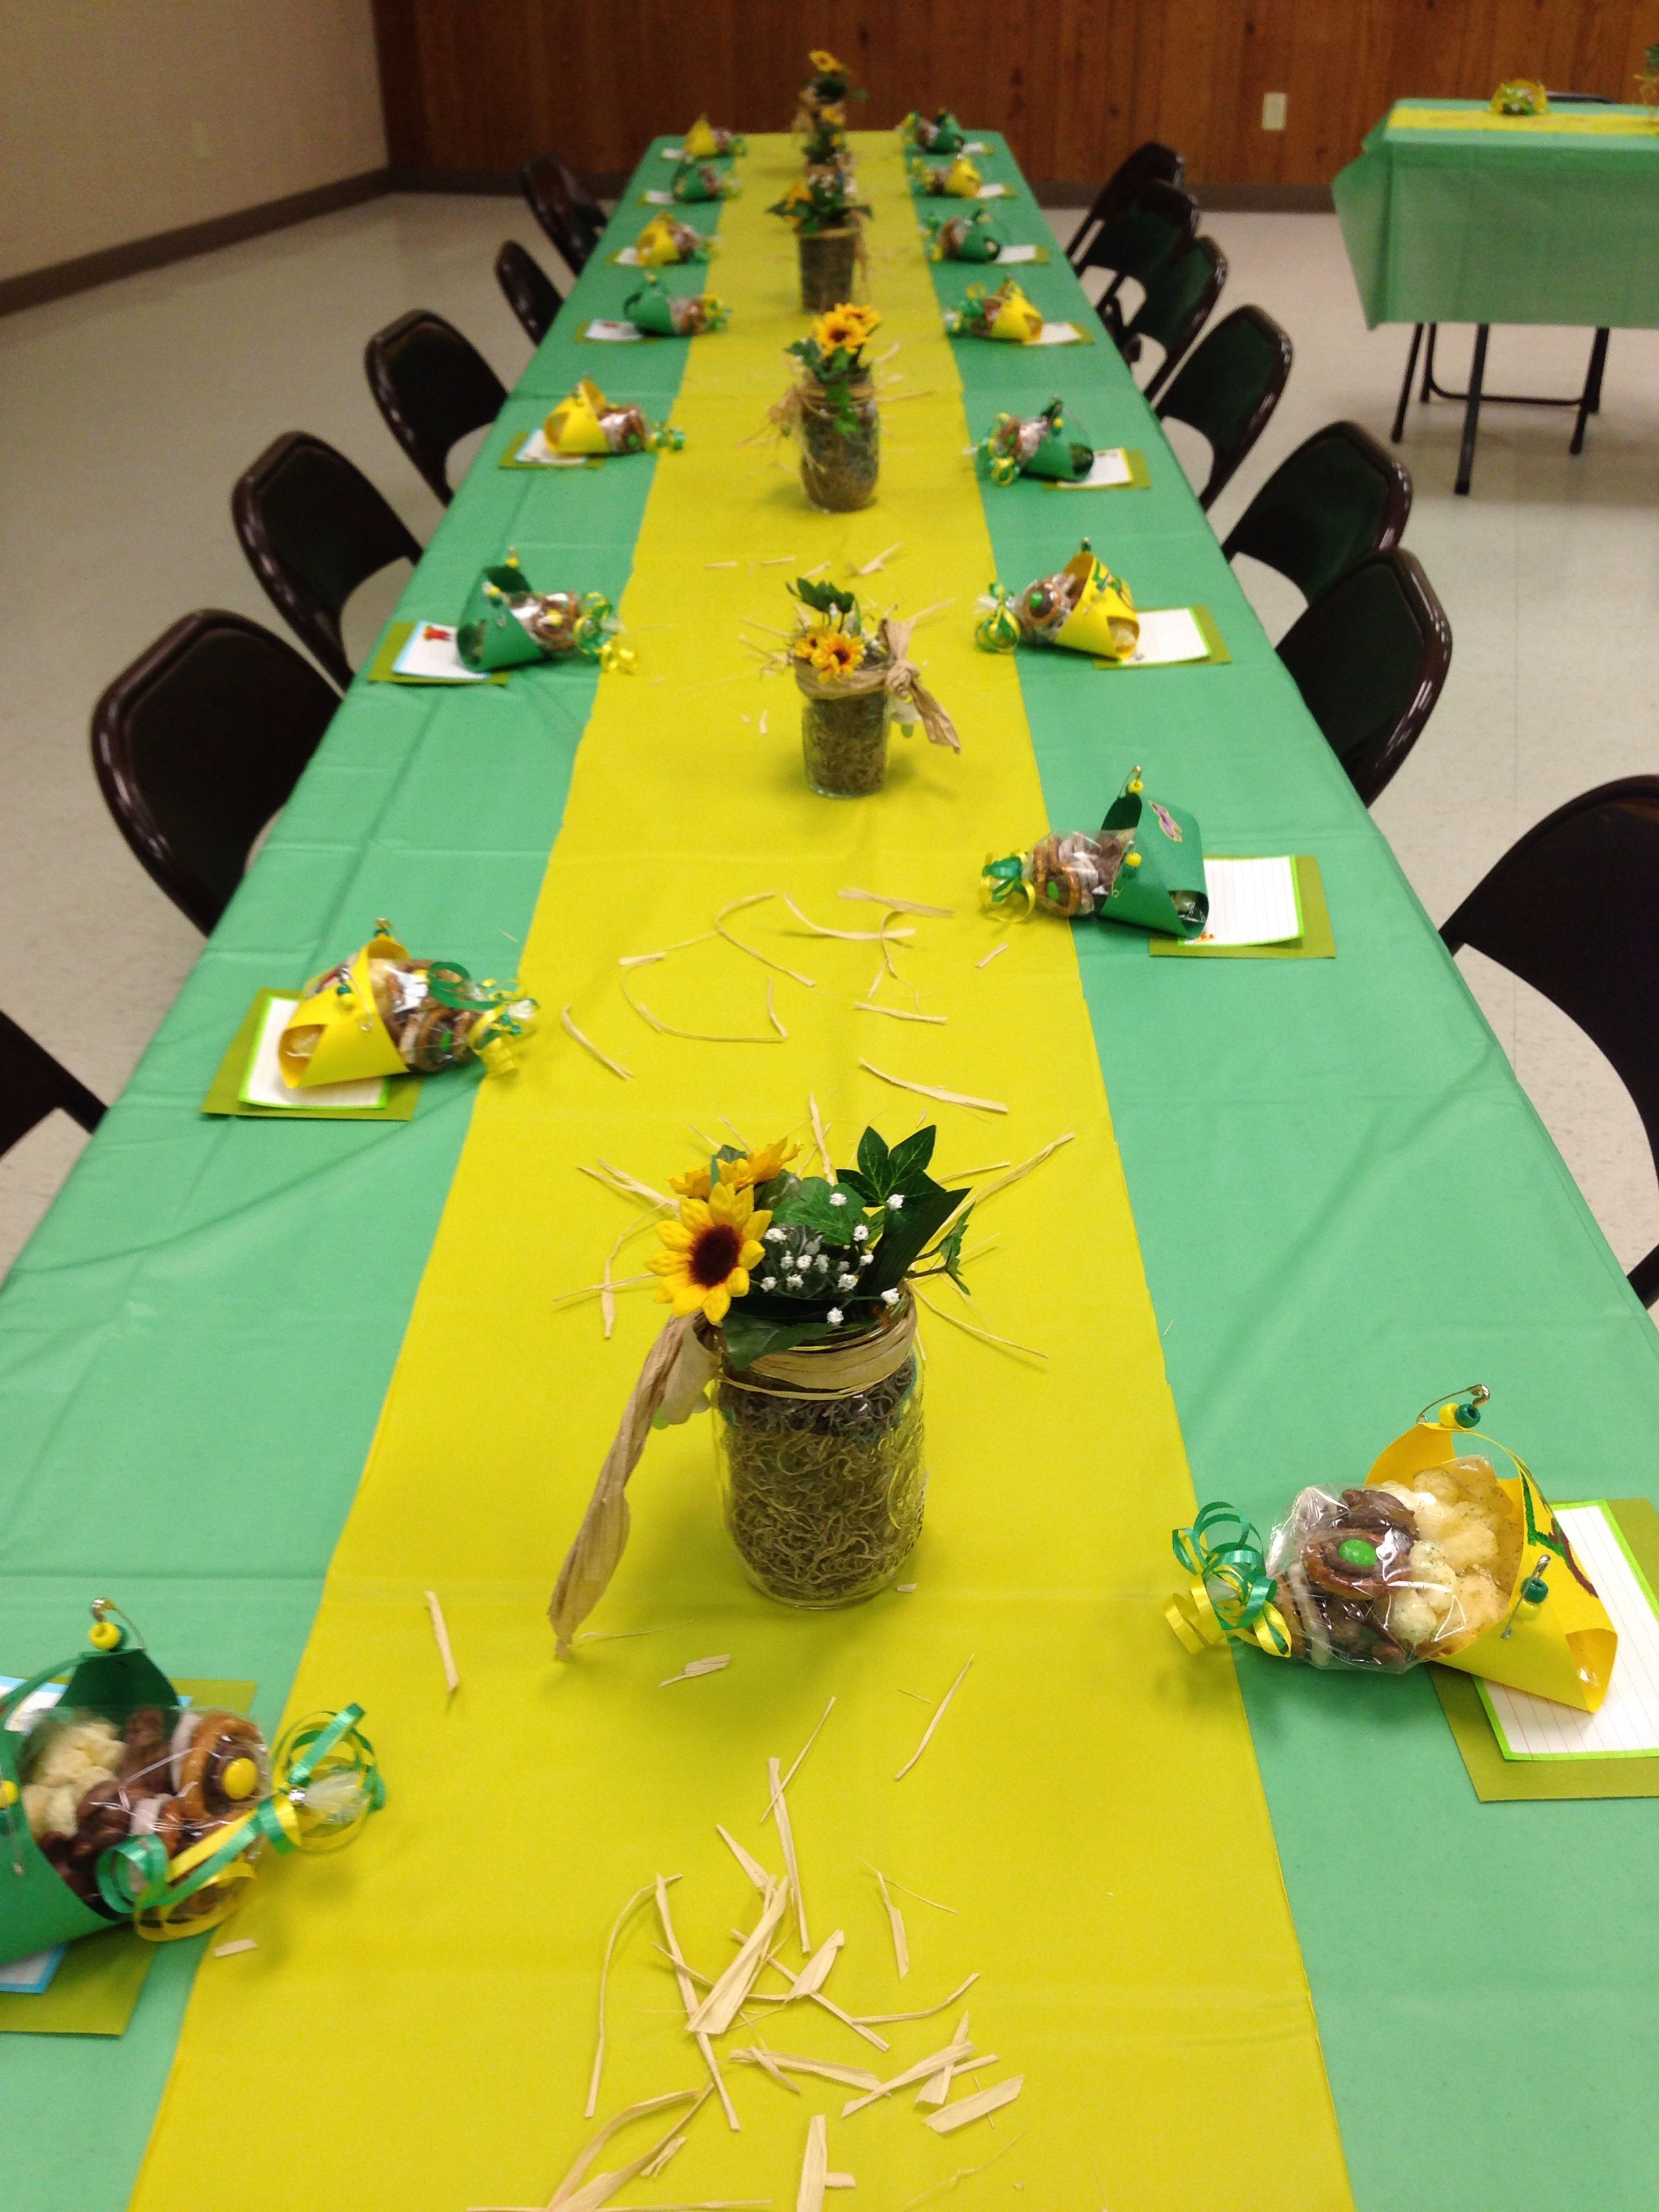 John Deere baby shower - Instead of doing the entire table just a yellow or  green strip down the middle.